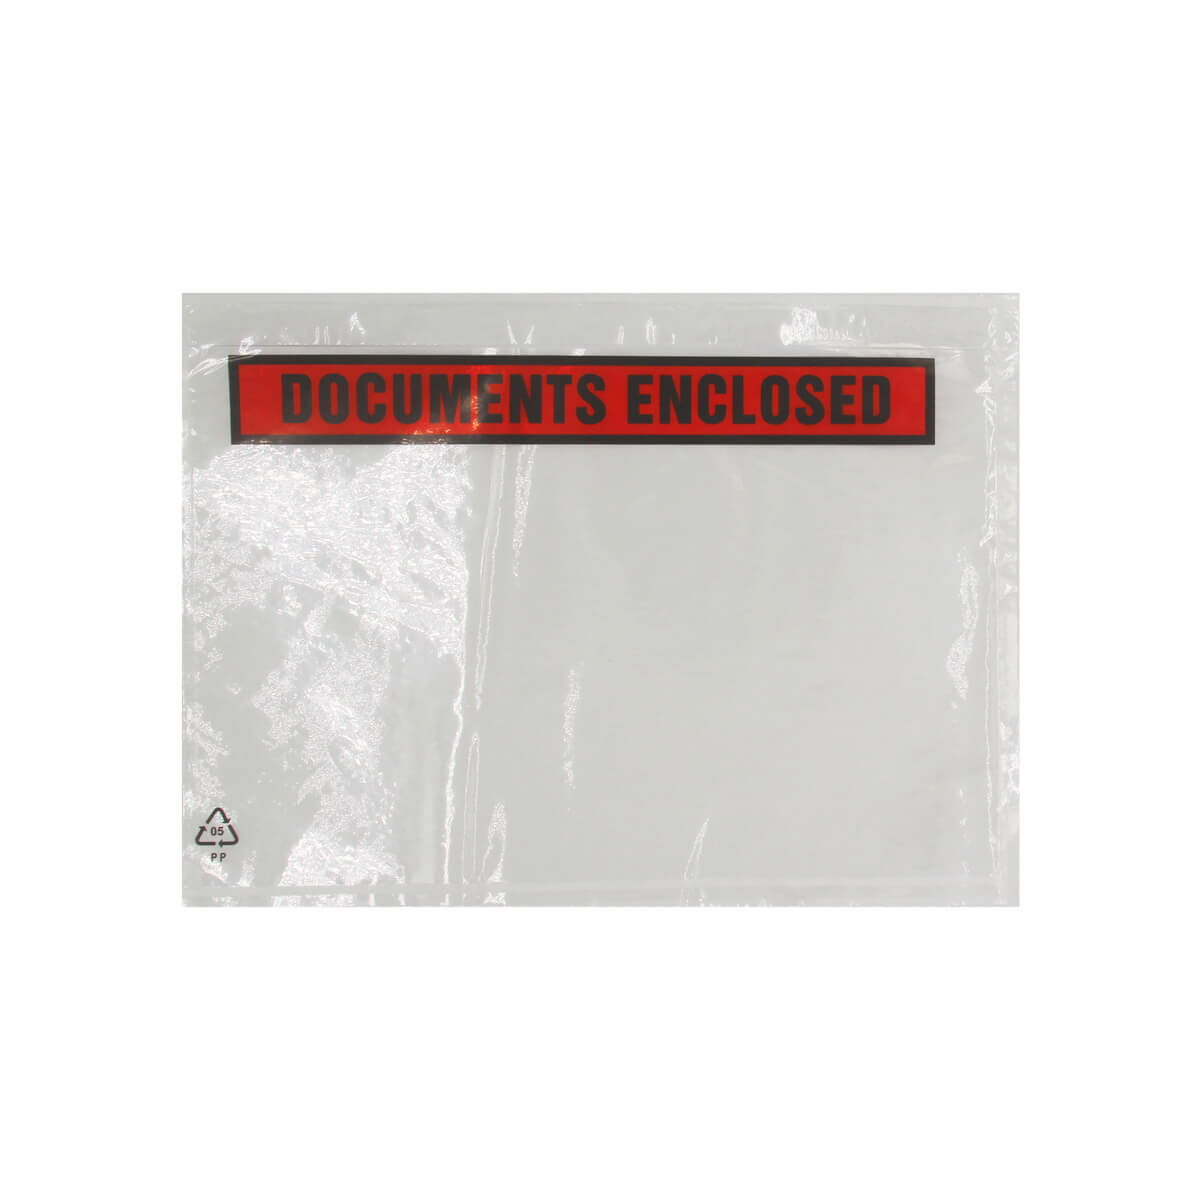 DL CLEAR DOCUMENTS ENCLOSED WALLETS PRINTED (110 x 220mm)